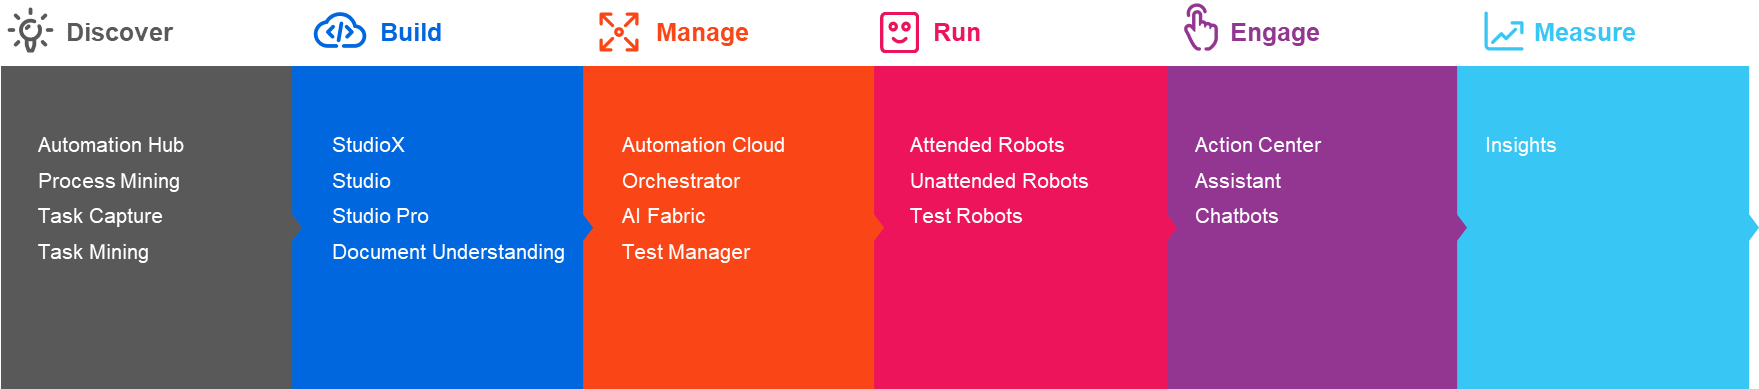 2020 automation lifecycle uipath